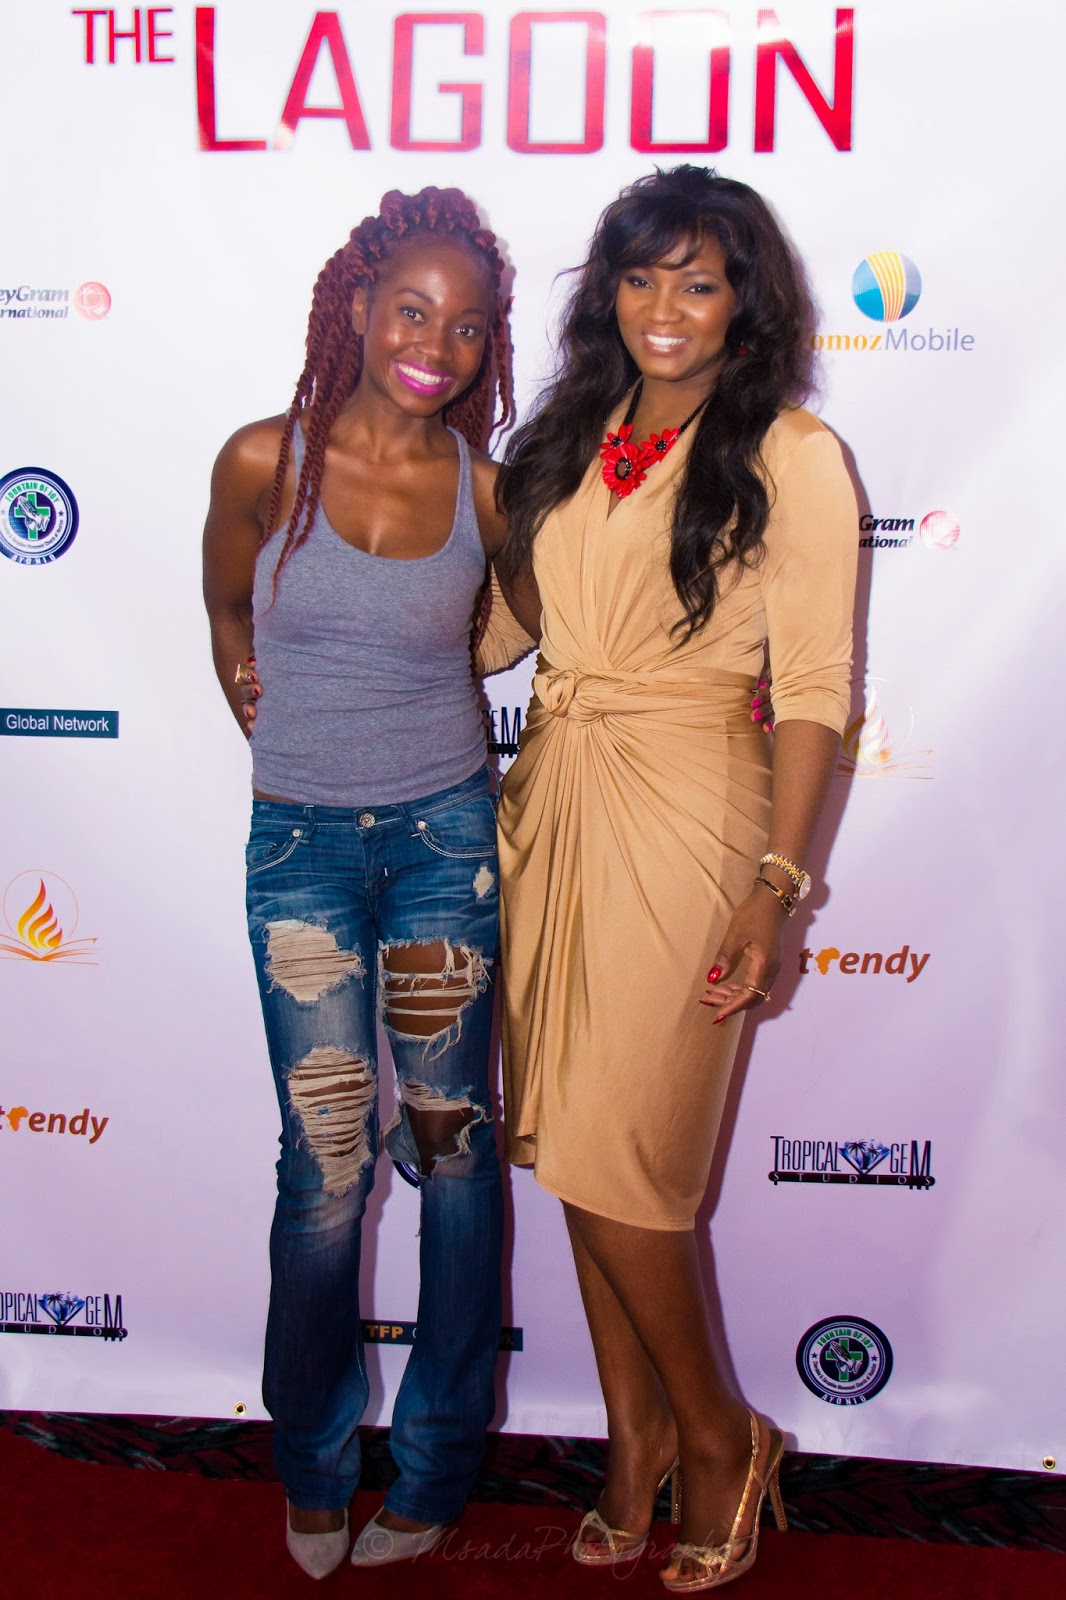 starring Omotola Jalade-Ekeinde  Photos of event now available hereOmotola Jalade Ekeinde 2014